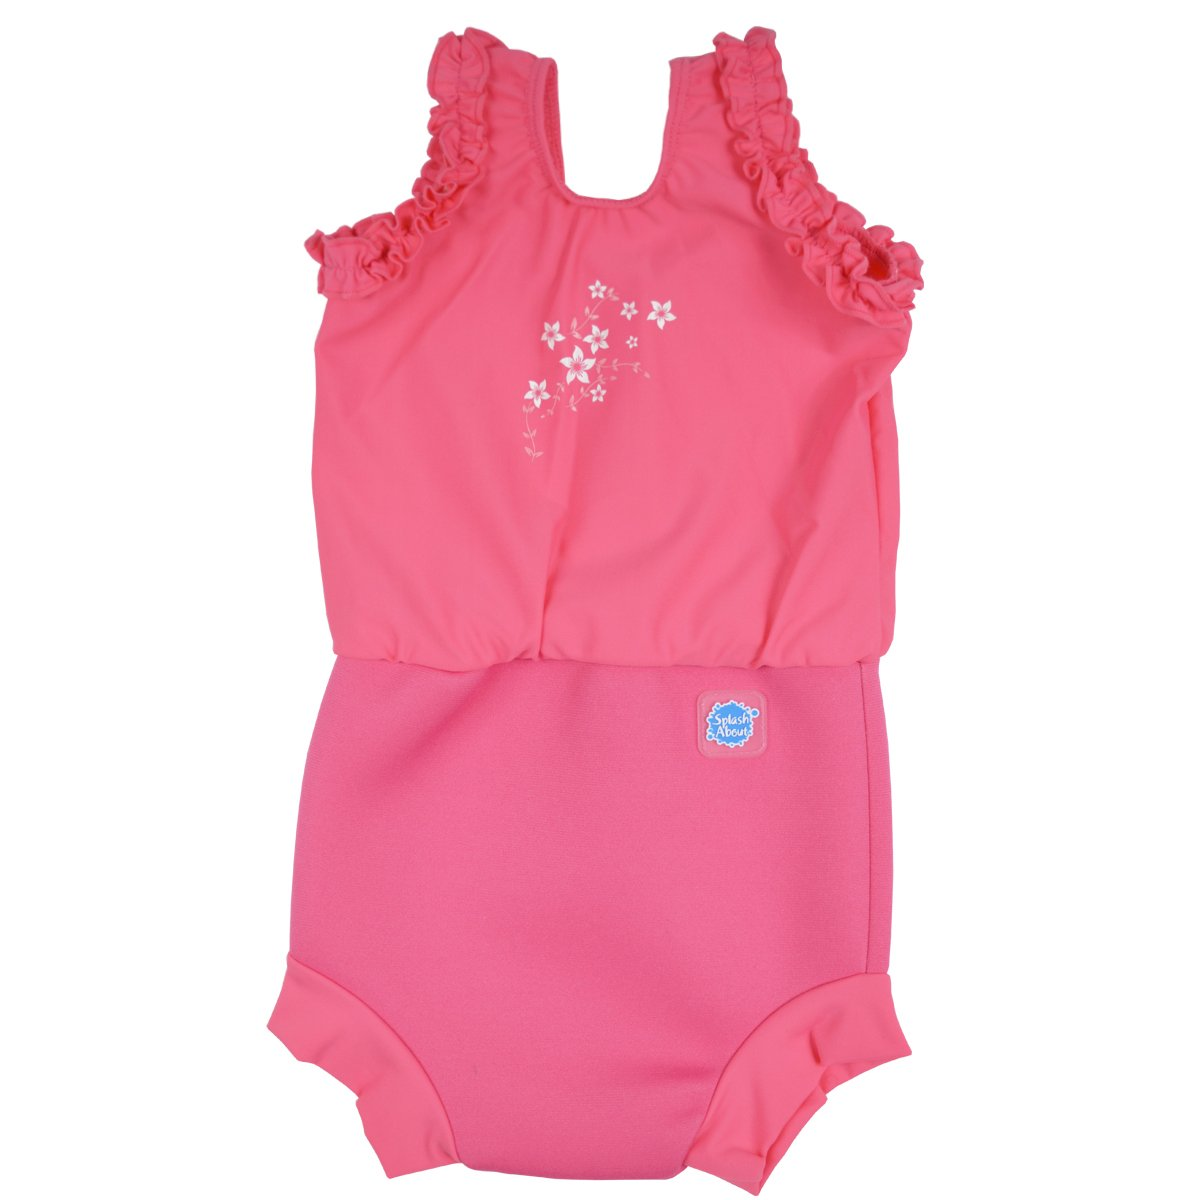 Splash About Happy Nappy Swimsuit UVFSTF1-P